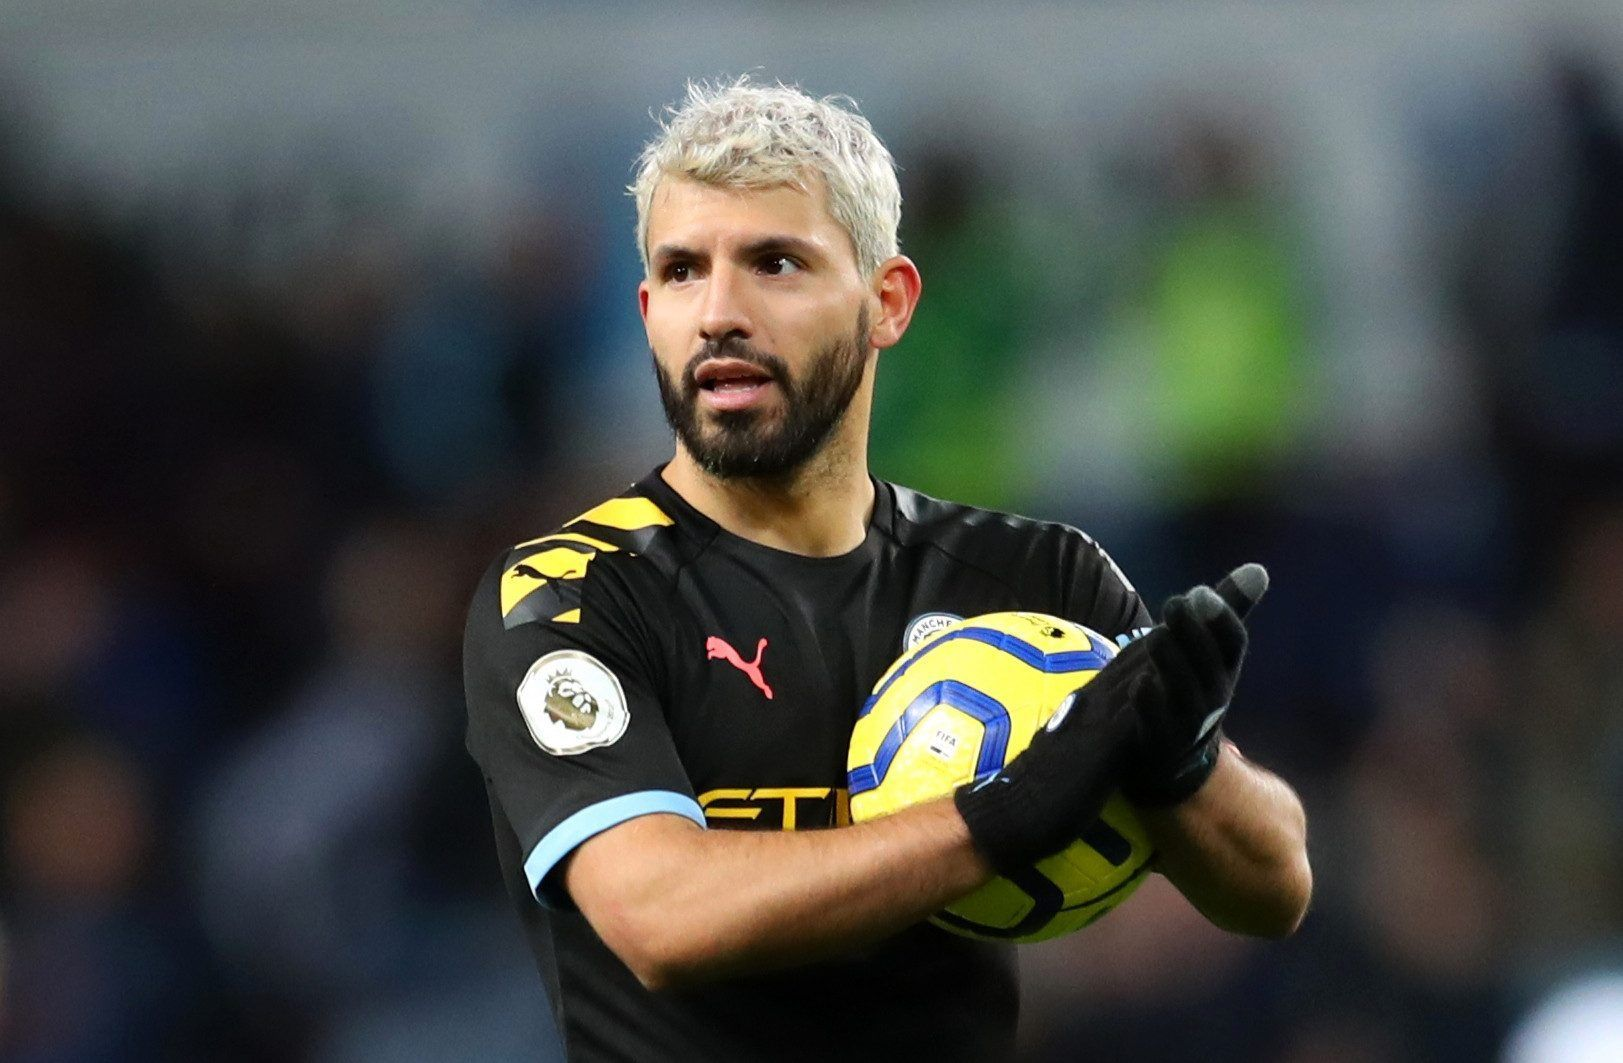 Real Madrid Vs Man City Live Stream How To Watch Champions League Clash For Free Kick Off Time Tv Channel And Talksport Coverage In 2020 Alan Shearer Lionel Messi Premier League